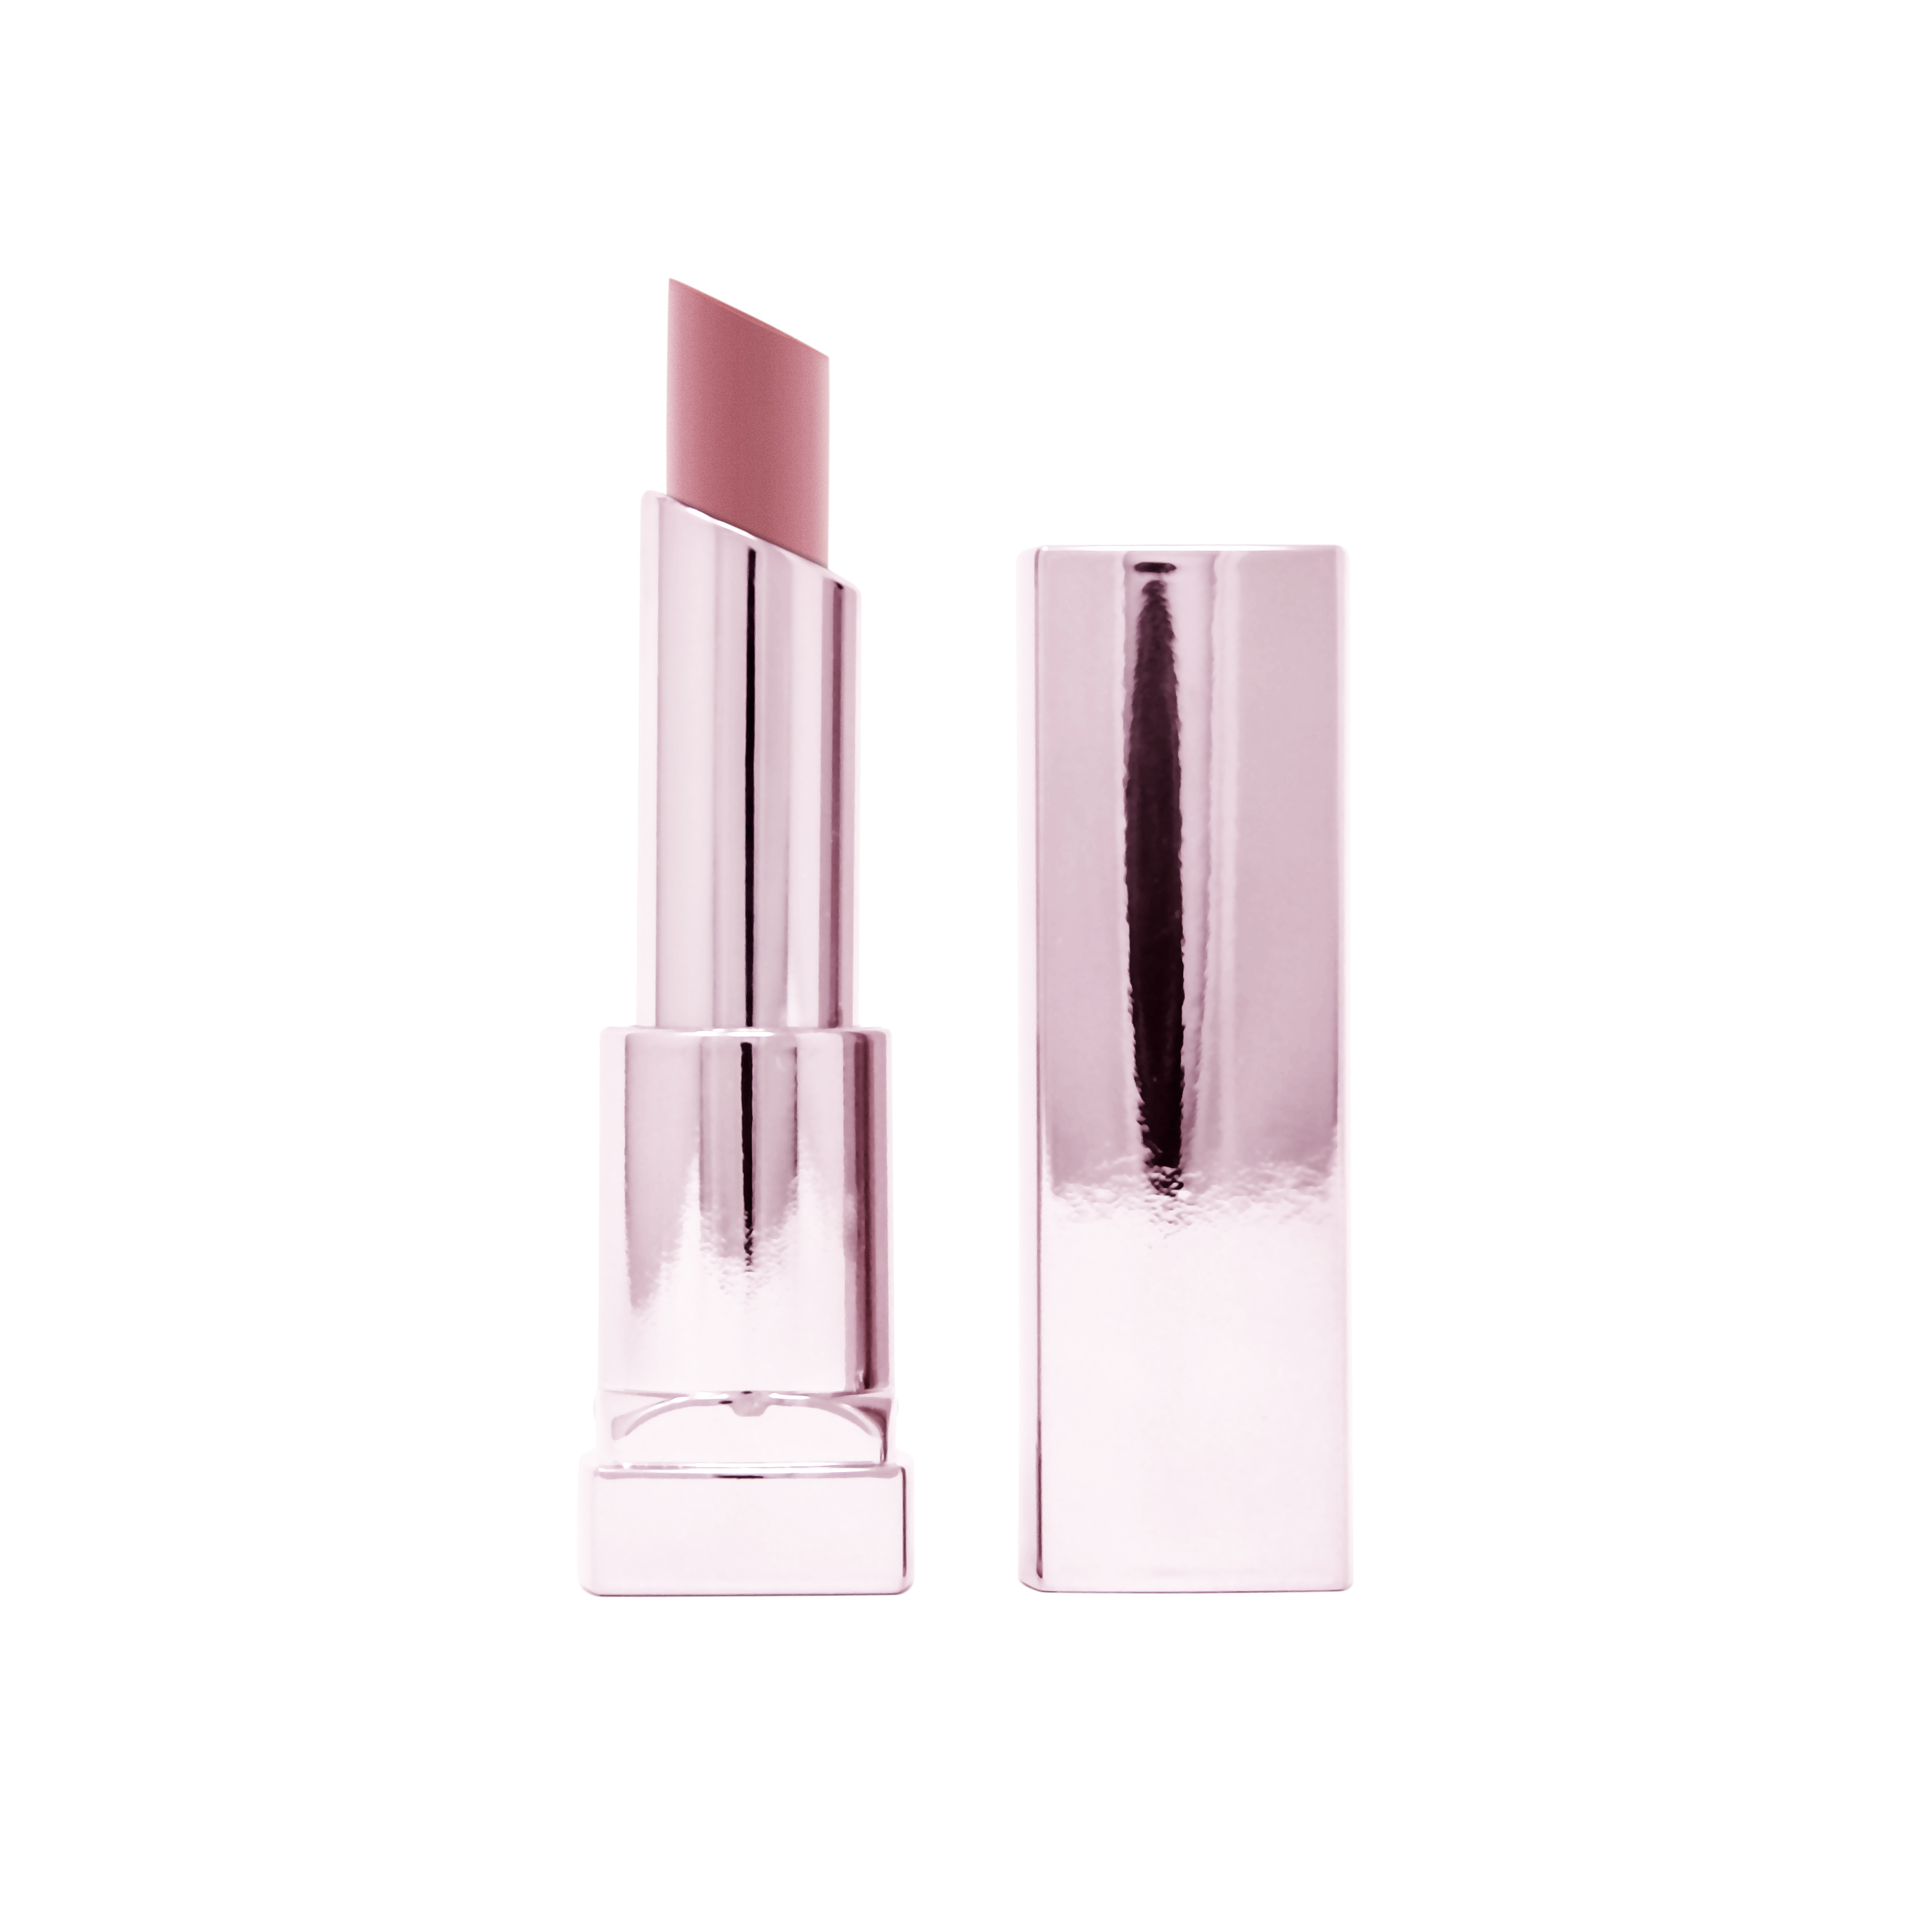 Color Sensational Shine Compulsion Lipstick 75 Undressed Pink